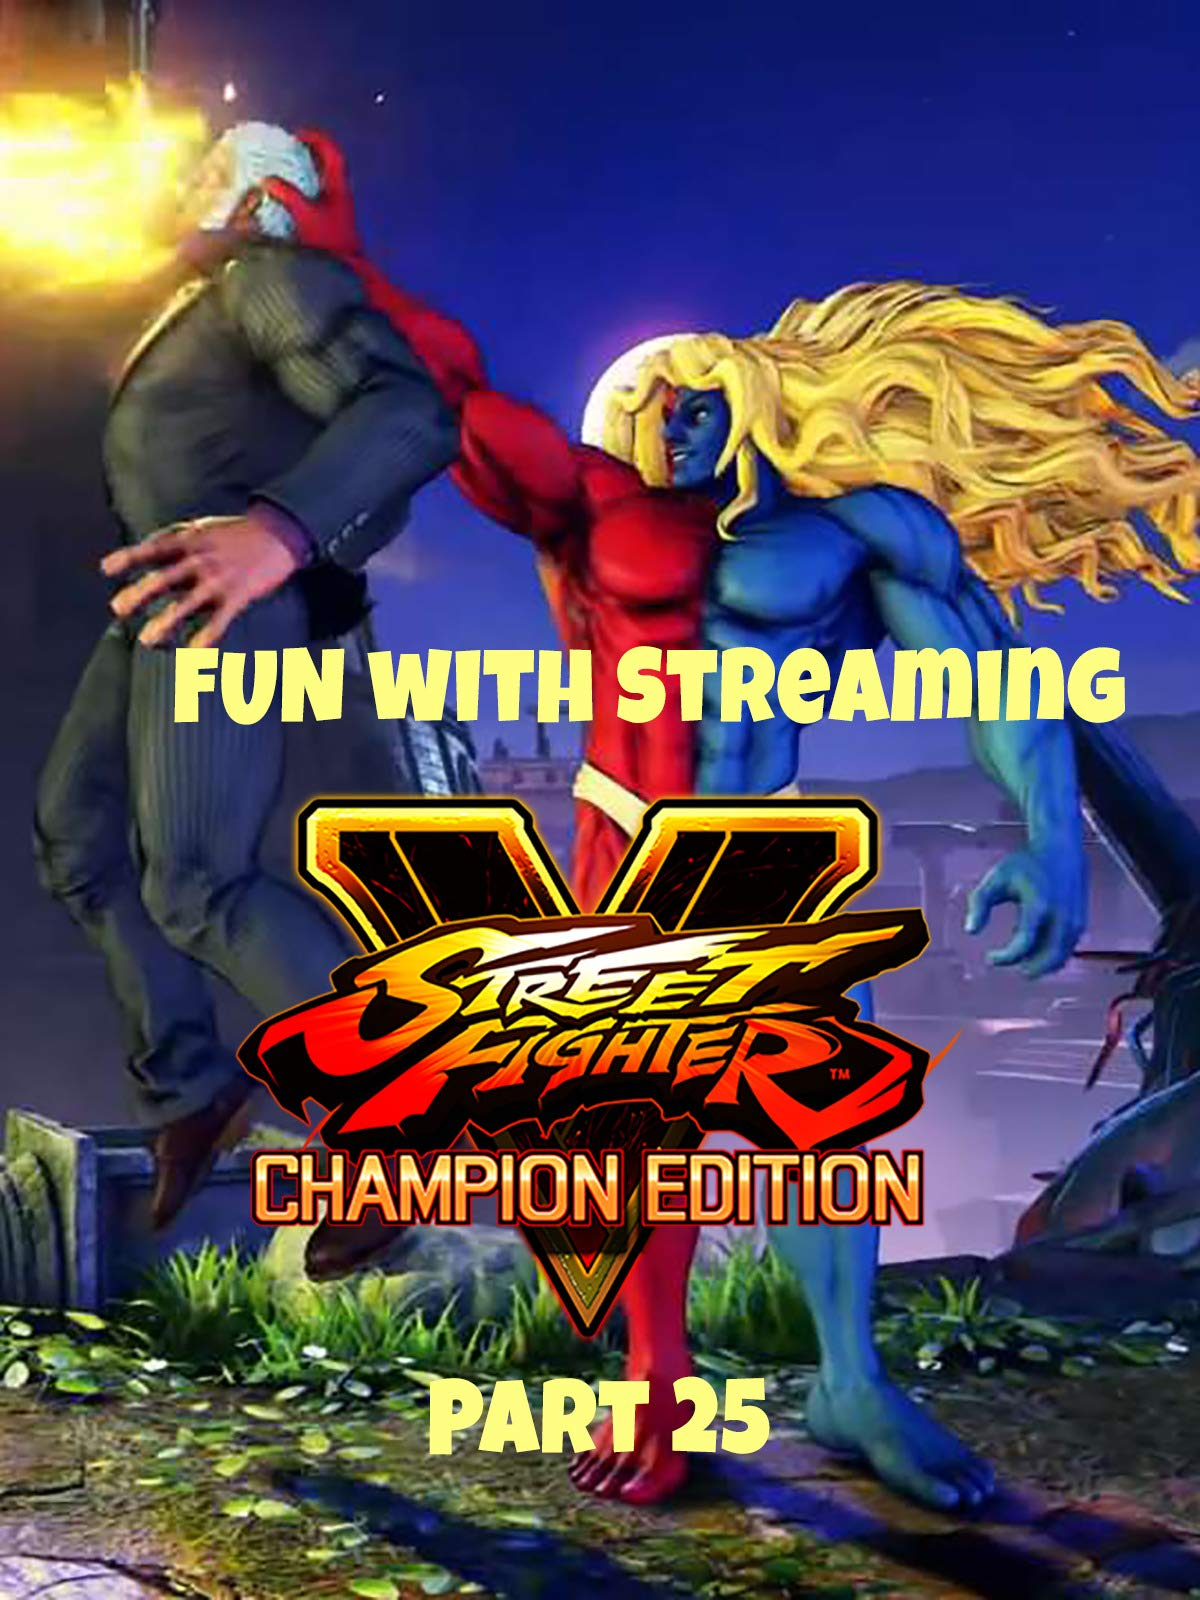 Clip: Fun with Streaming Street Fighter V Champion Edition Part 25 on Amazon Prime Video UK